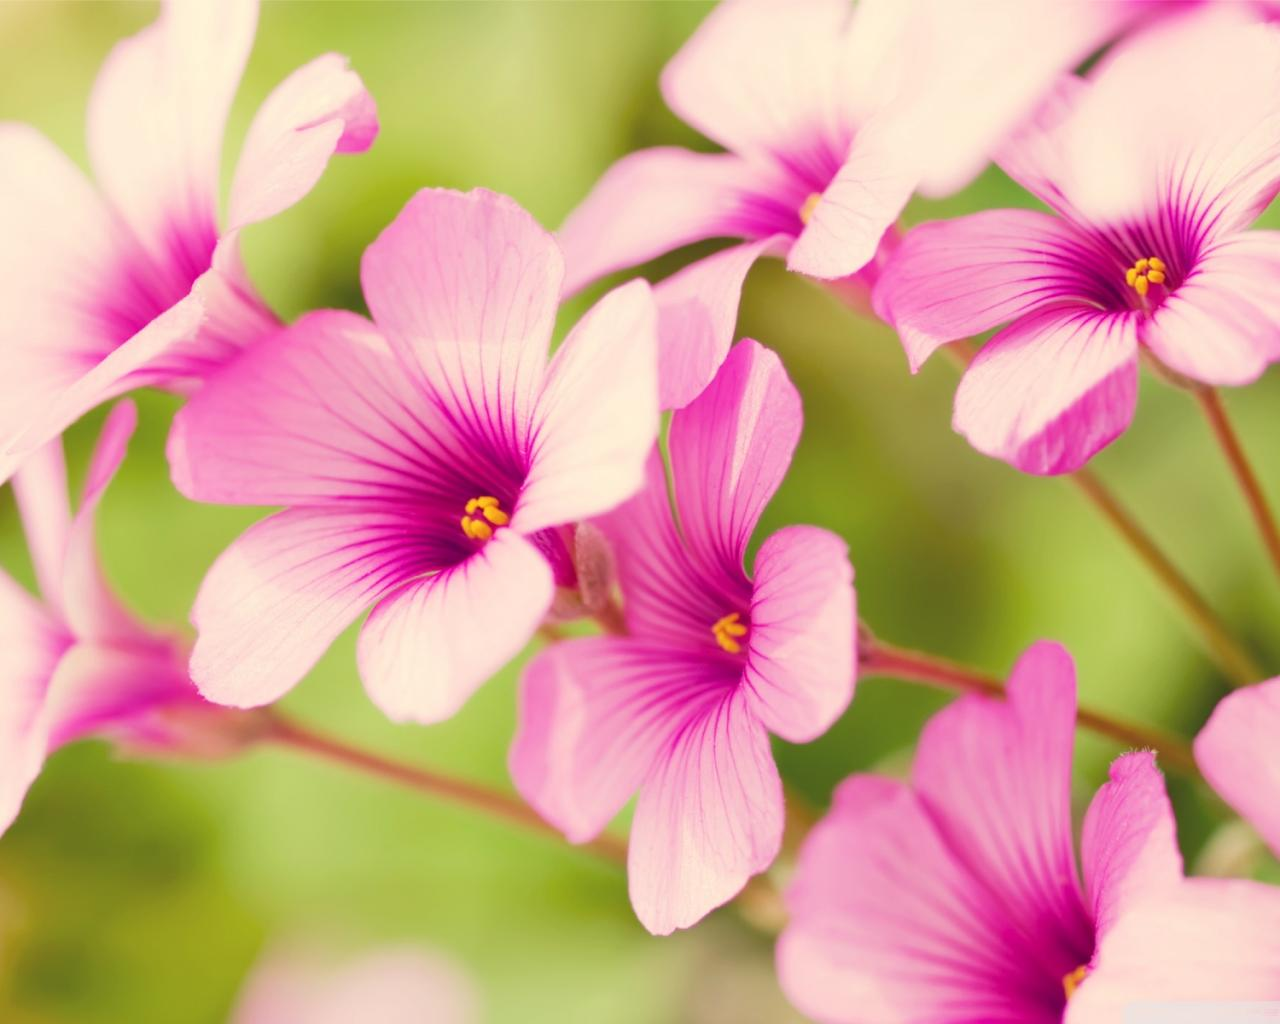 Download free flowers pictures image Wallpapers Flowers Free (76+) image